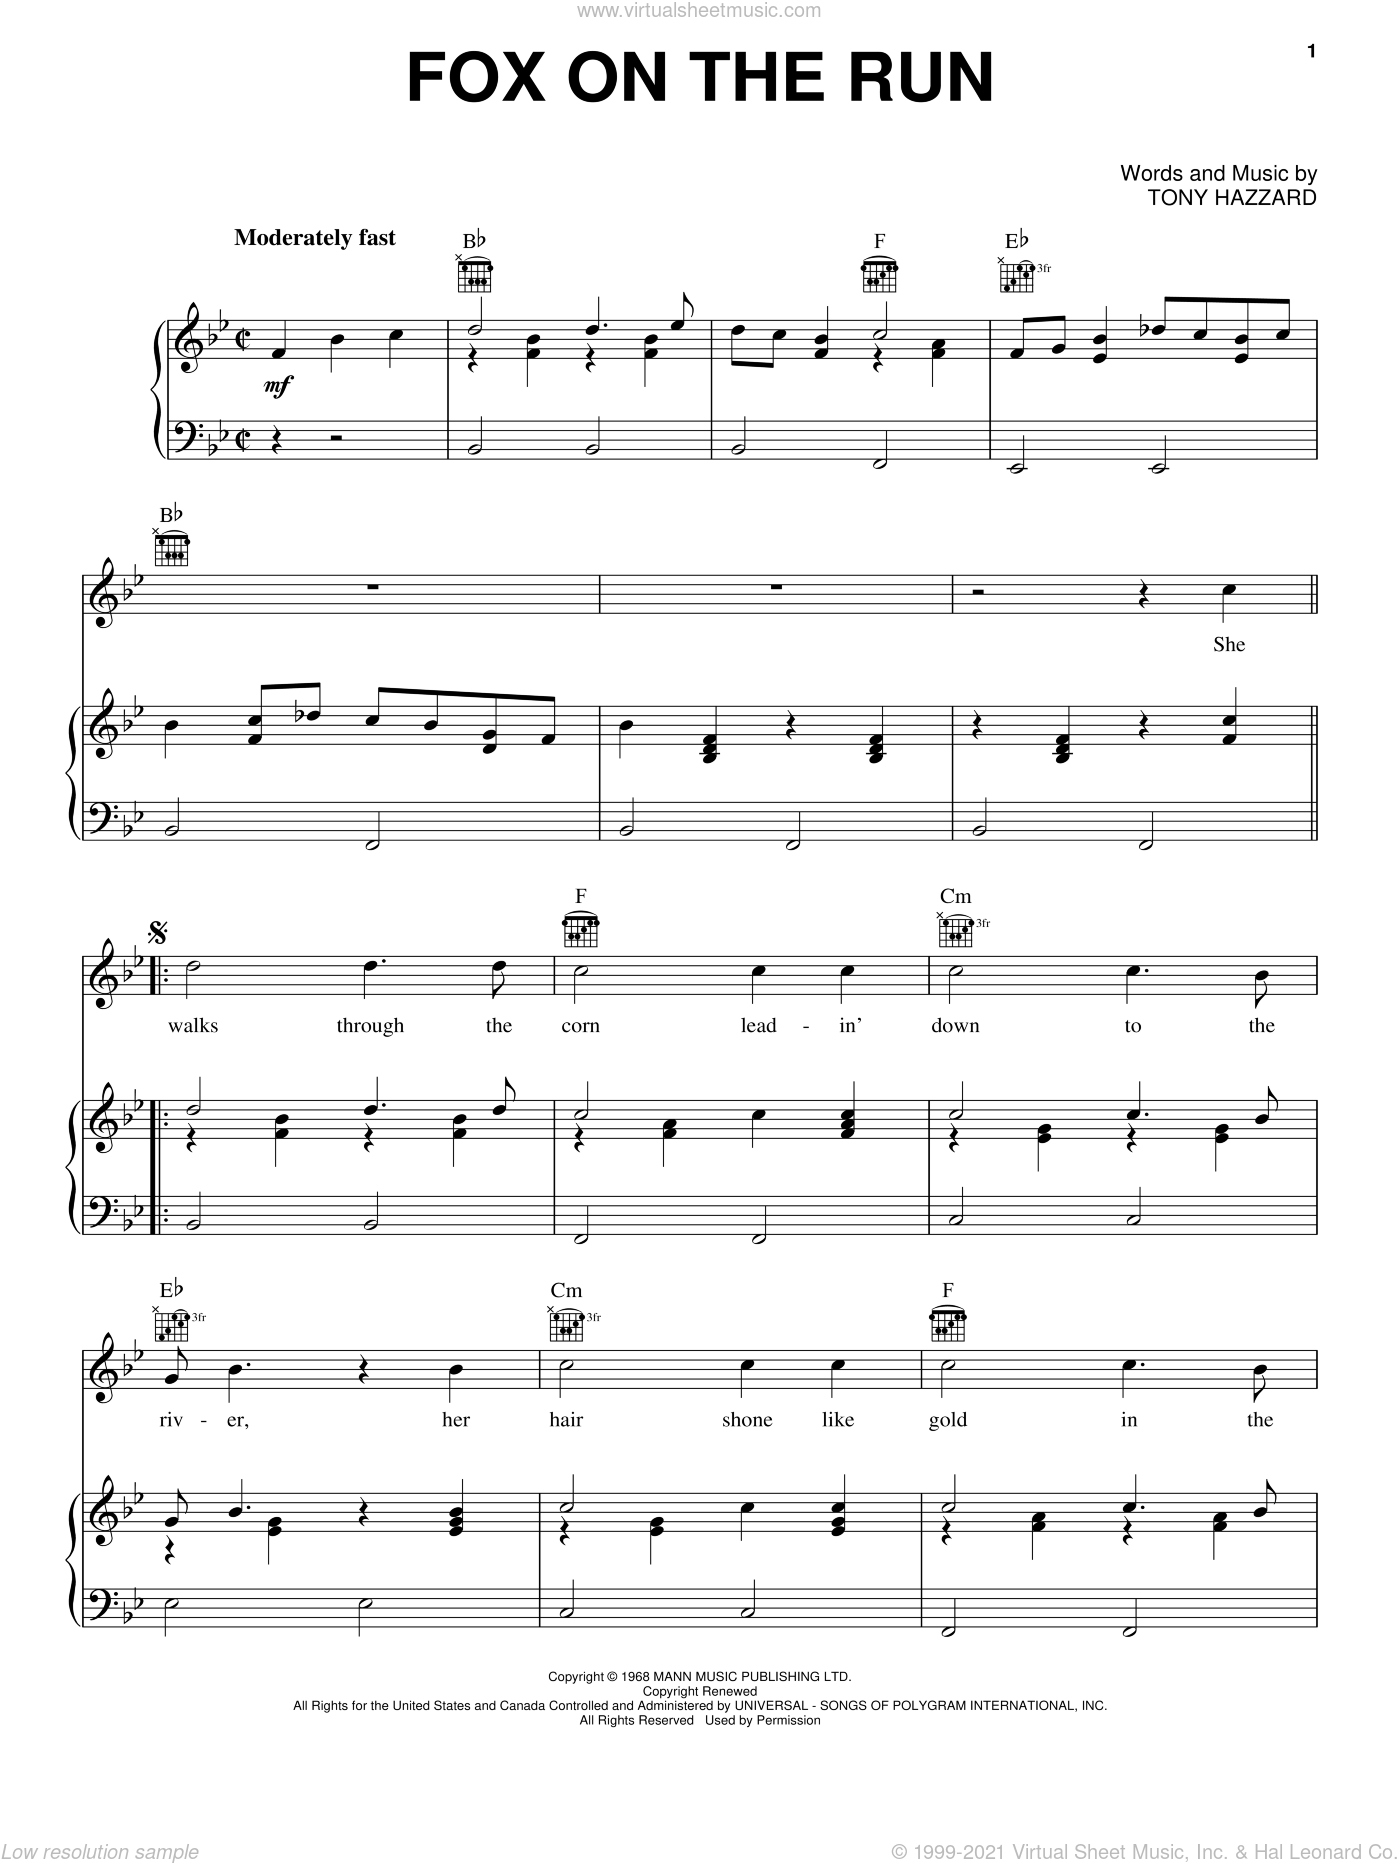 Fox On The Run sheet music for voice, piano or guitar by Tony Hazzard, intermediate